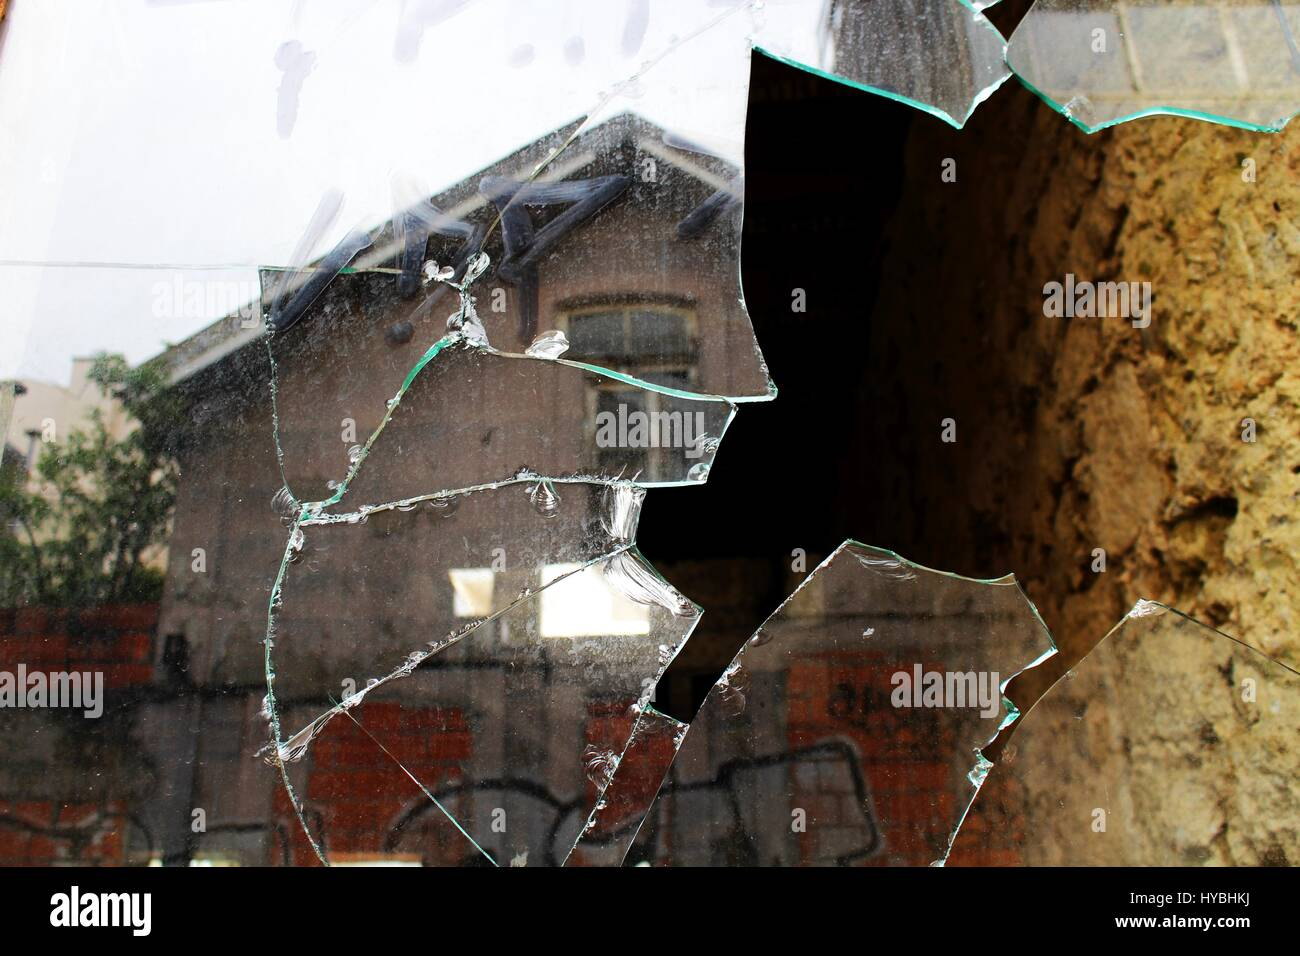 A broken window of an abandoned building near Brito Capelo street in Matosinhos, Porto, Portugal. - Stock Image